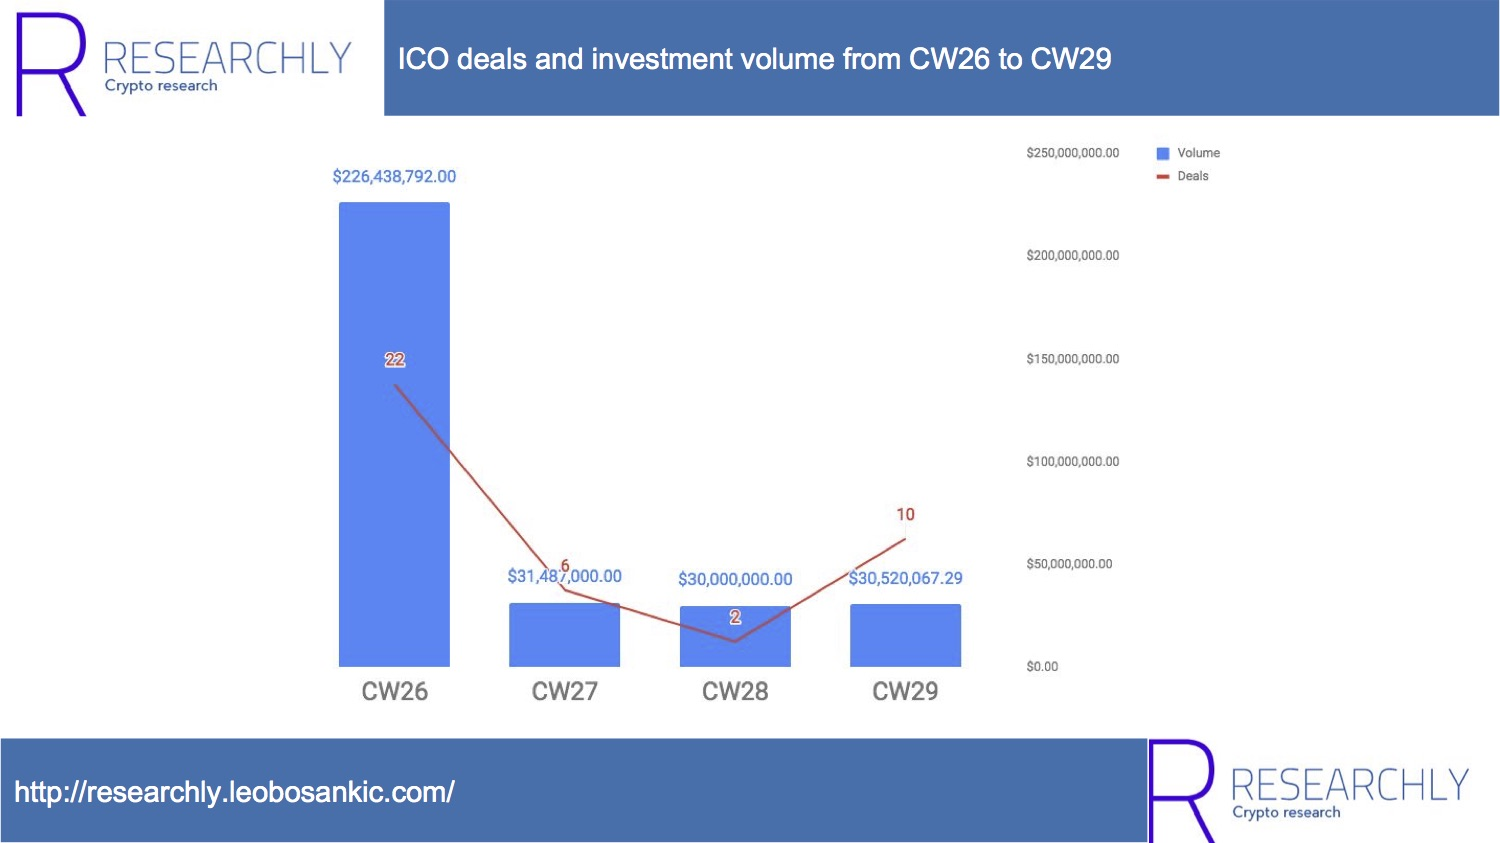 ICO deals and investment volume from CW26 to CW29